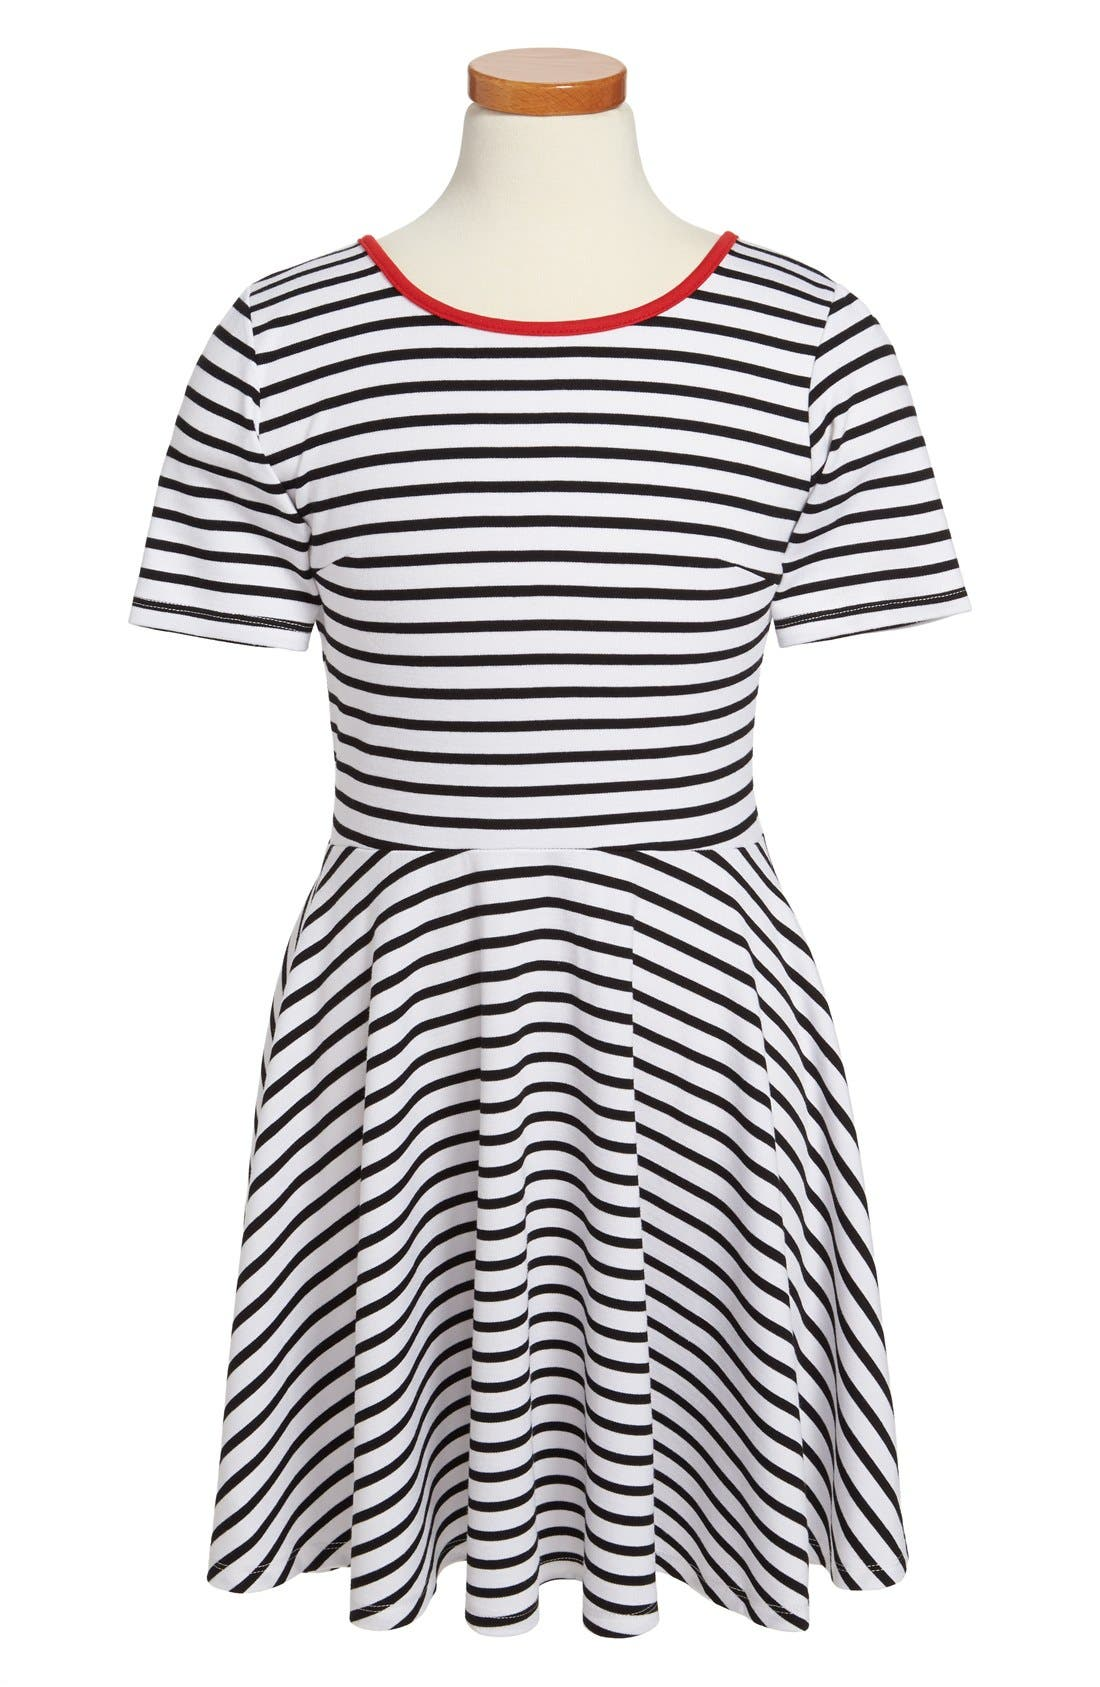 Main Image - Miss Behave 'Lacey' Ponte Knit Stripe Skater Dress (Big Girls)